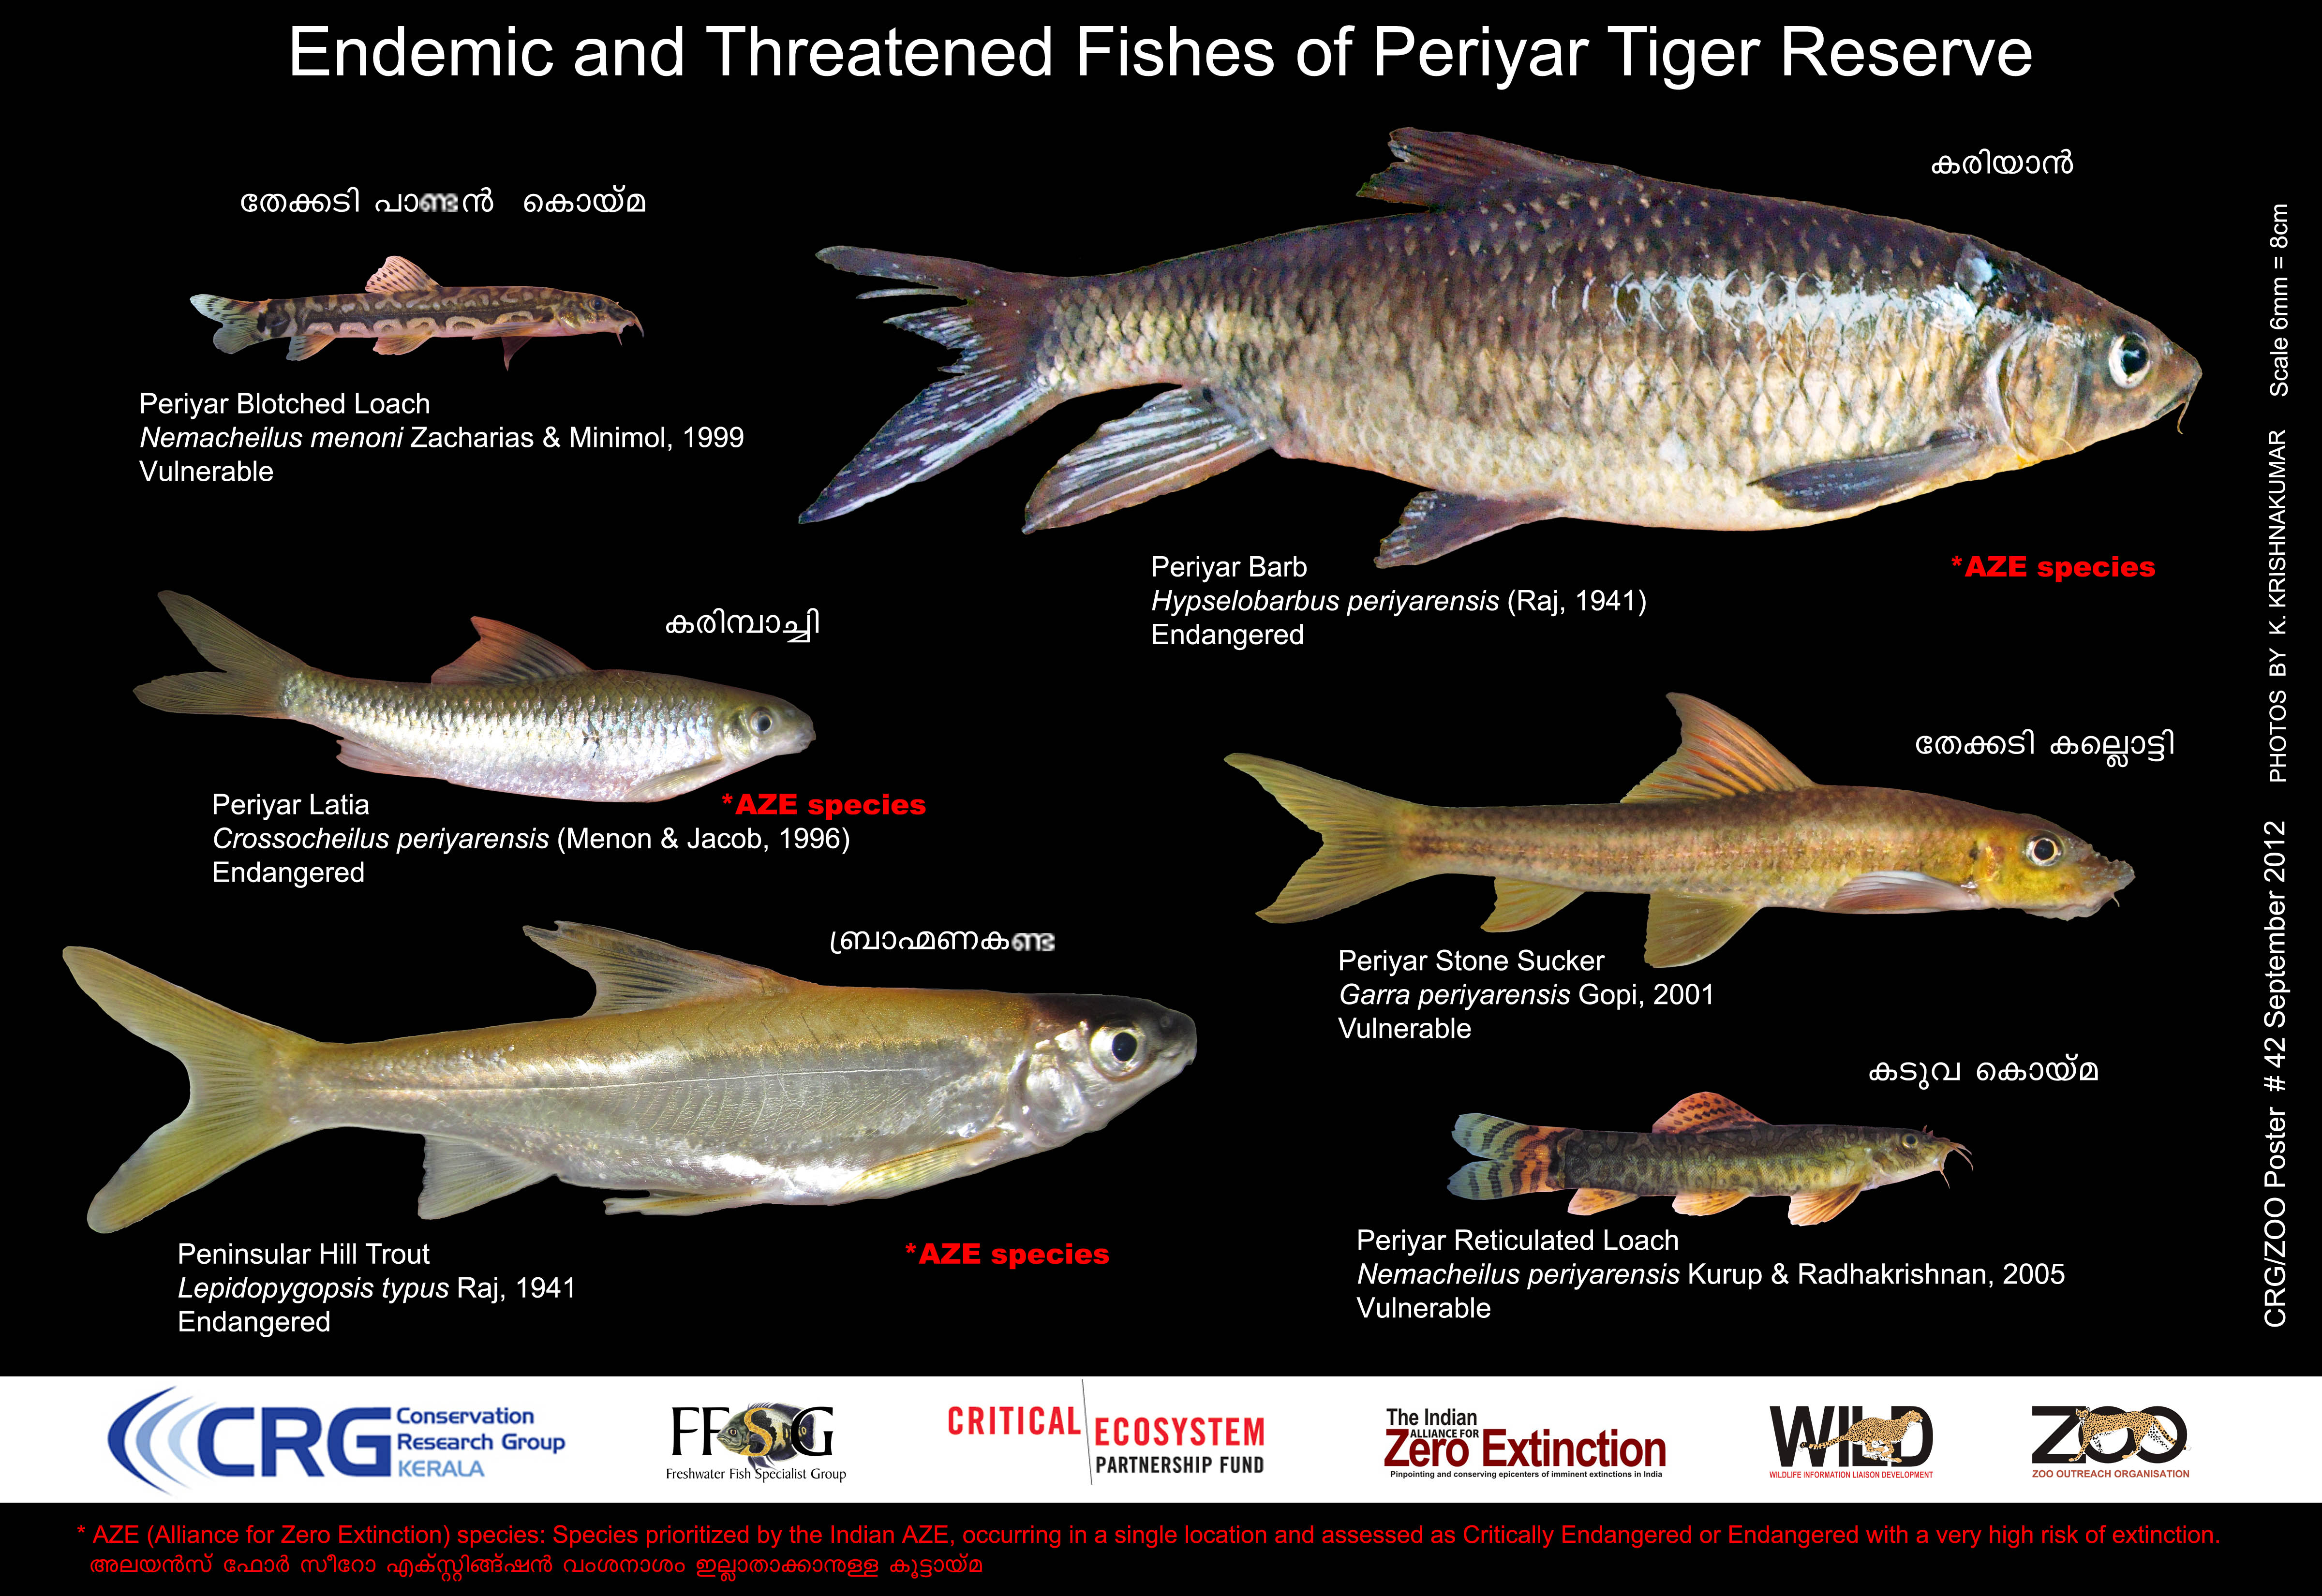 The FFCNSA  provided technical advice for this educational poster on the endemic and threatened fishes of the Periyar Tiger Reserve. Click on the poster for more details.